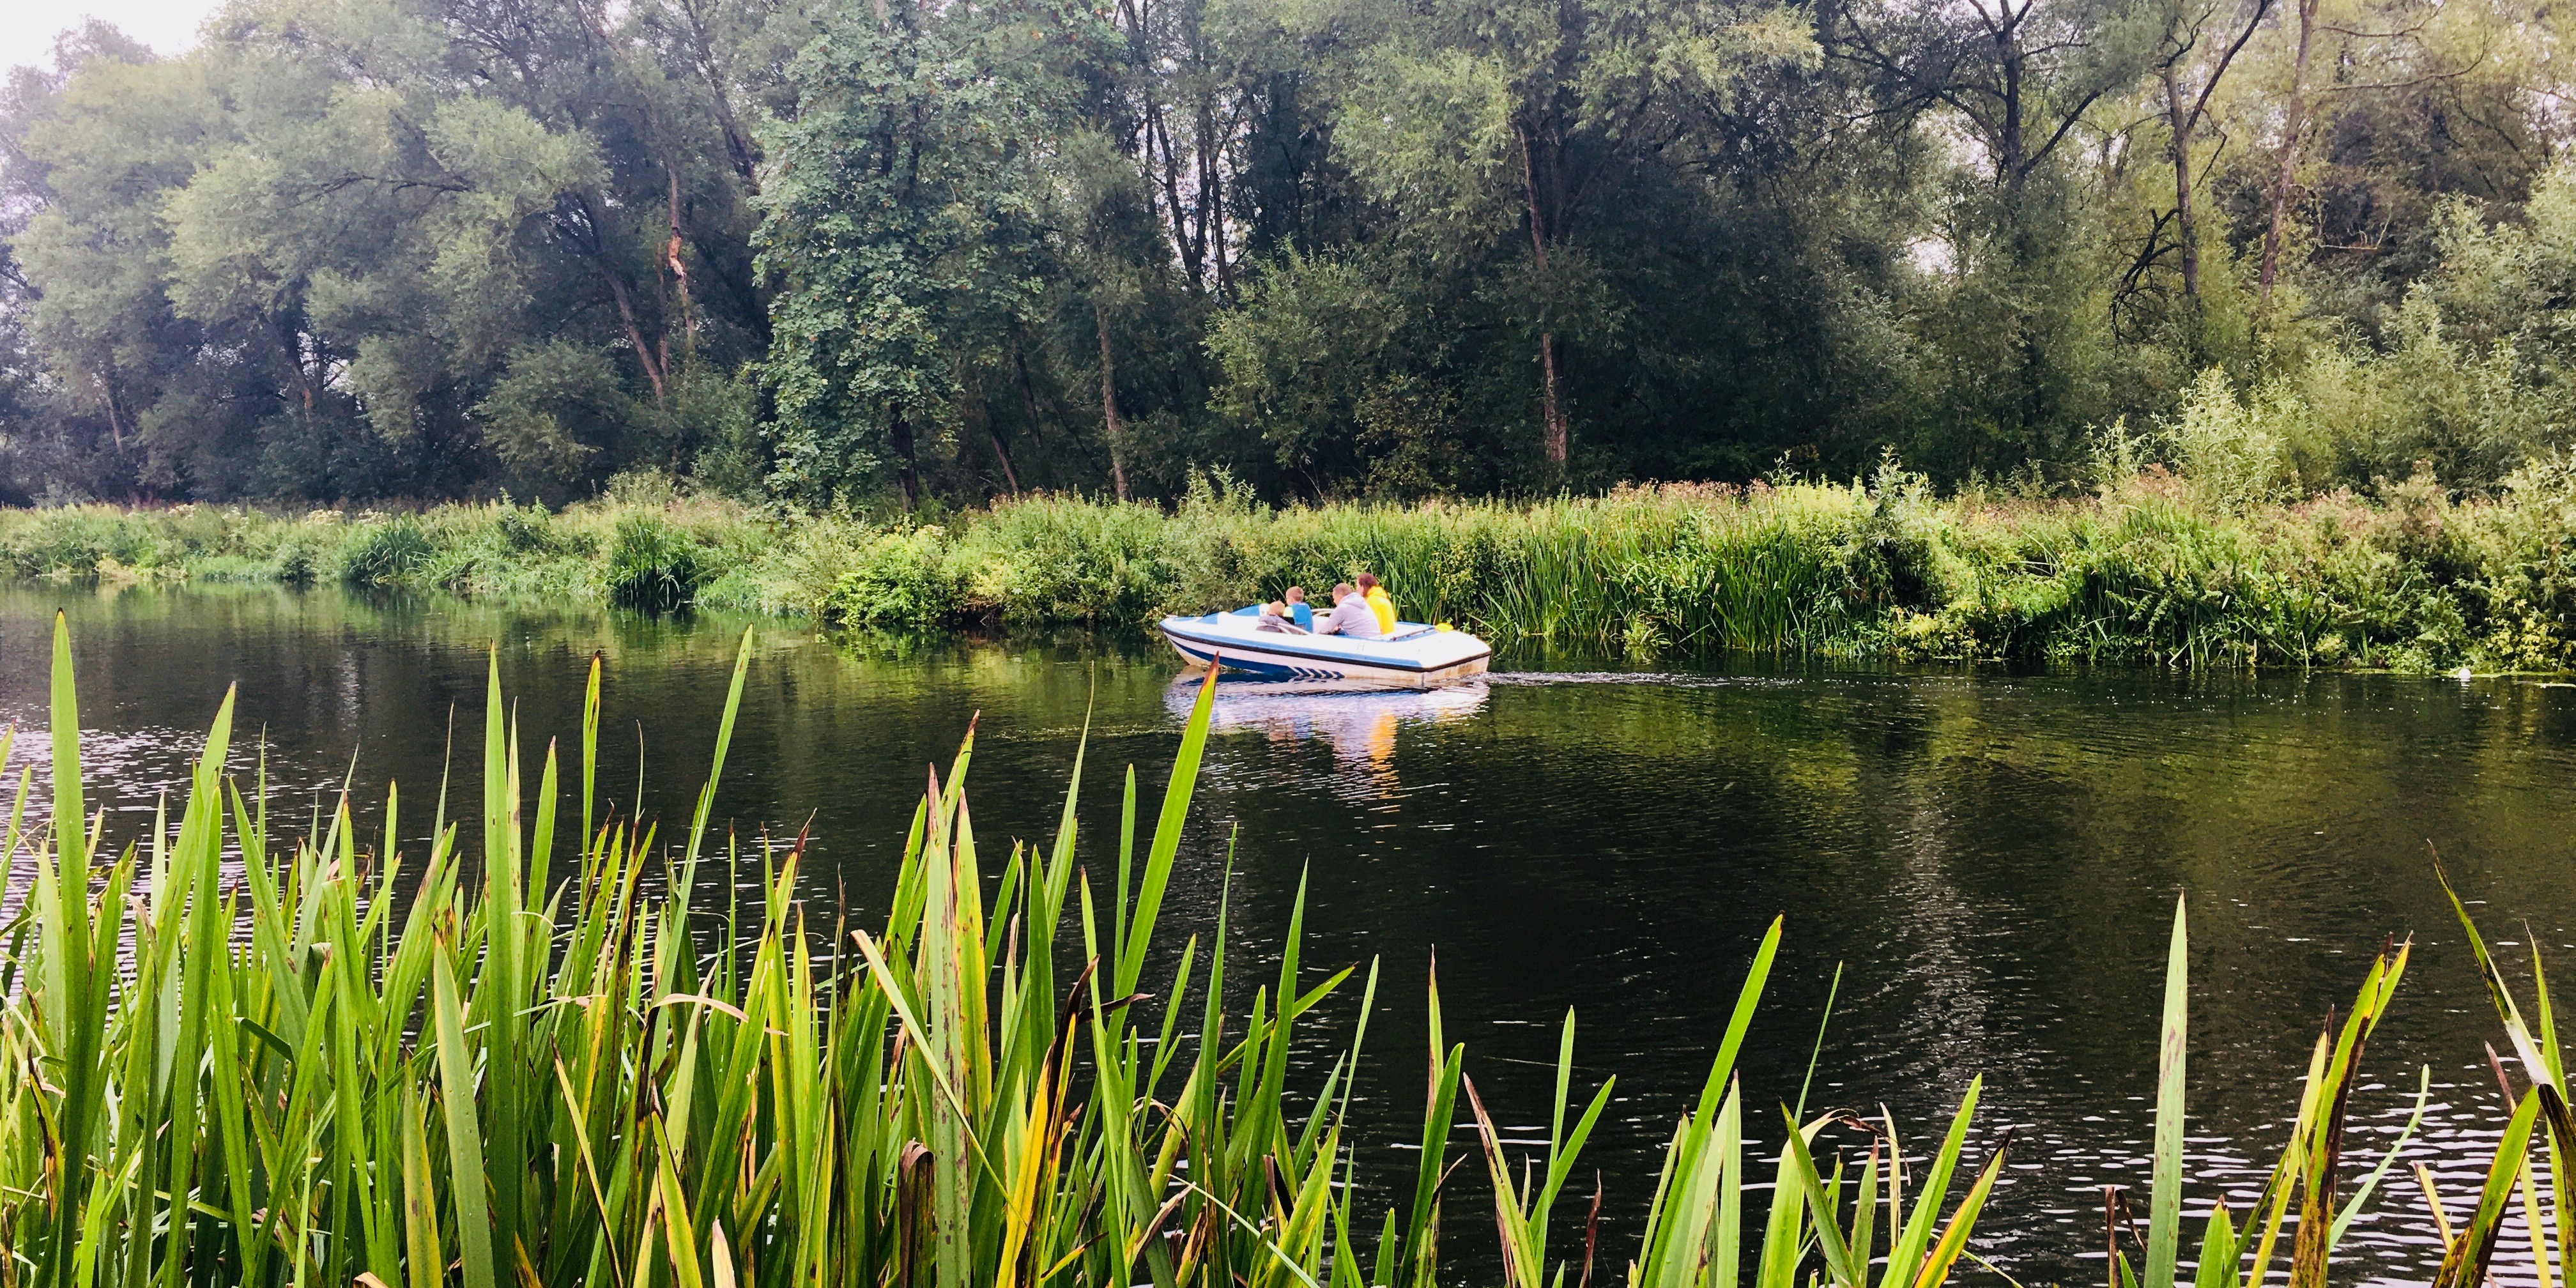 Lee Valley boating